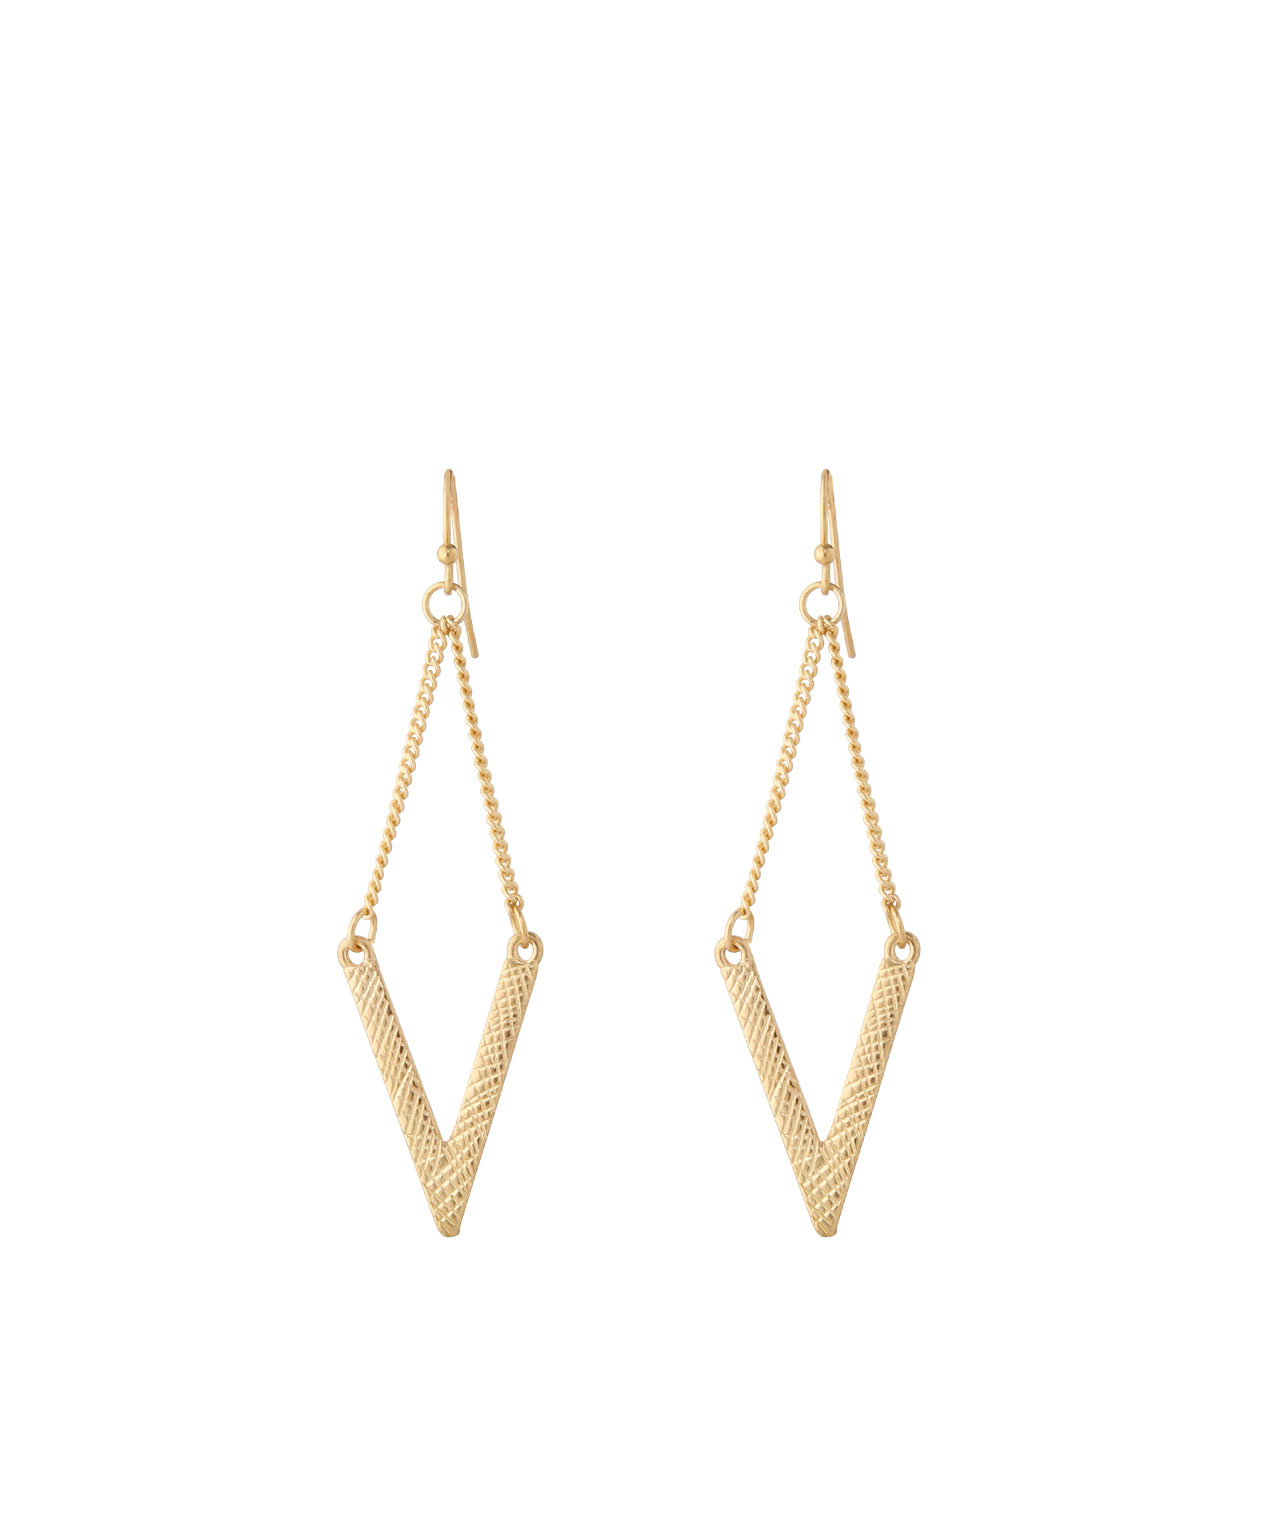 textured chain geo earrings, GOLD, hi-res